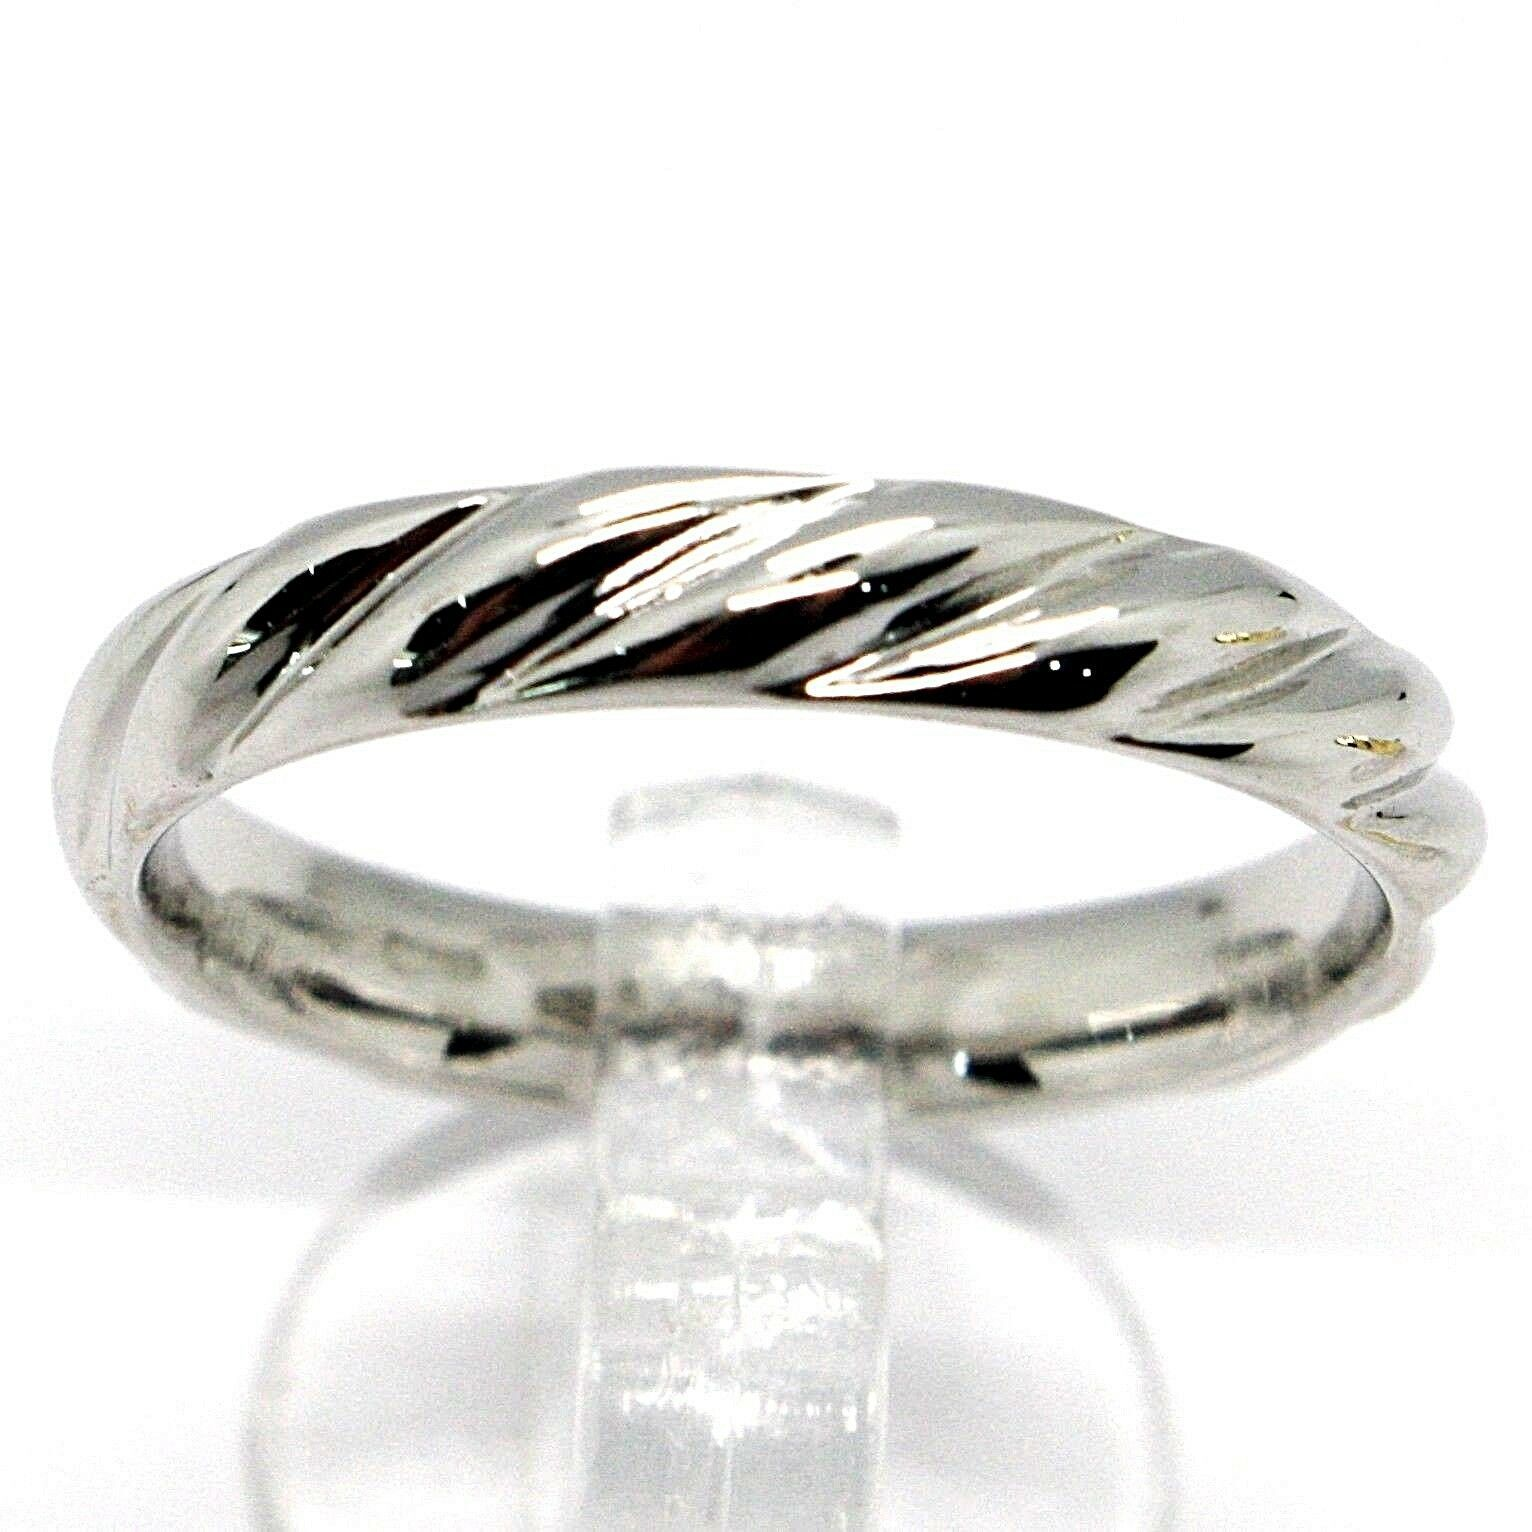 18K WHITE GOLD BAND BRAIDED RING, BRAID WOVEN, SMOOTH, MADE IN ITALY